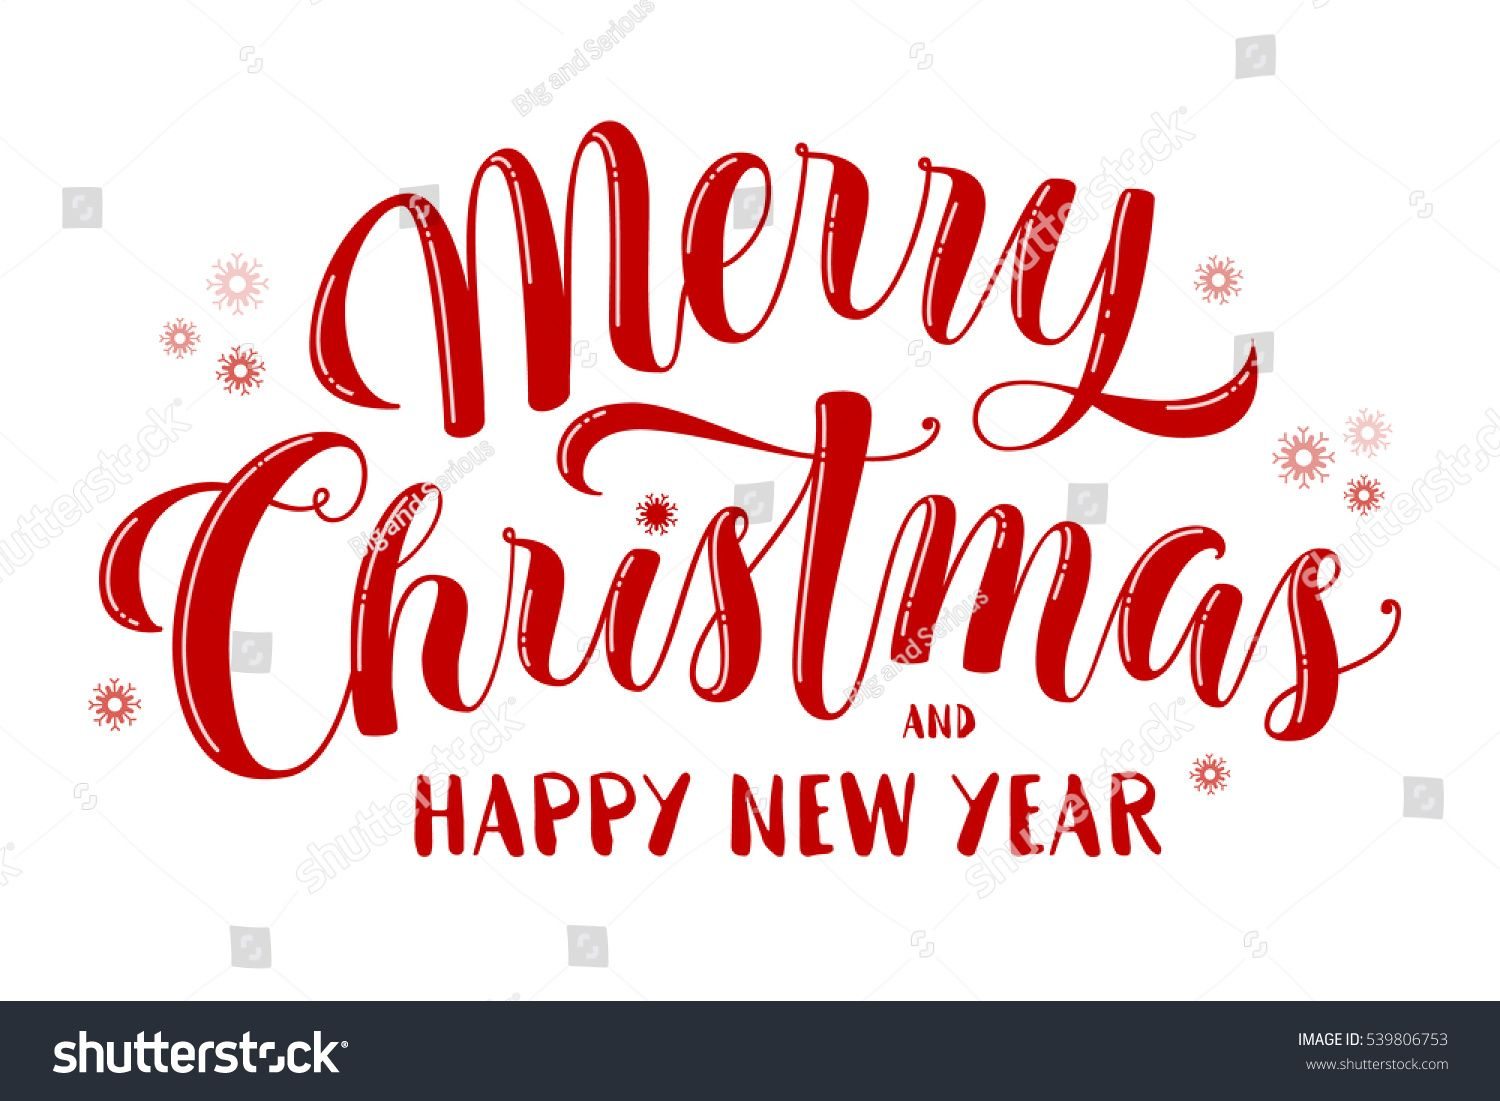 Merry Christmas and Happy New Year text, lettering for